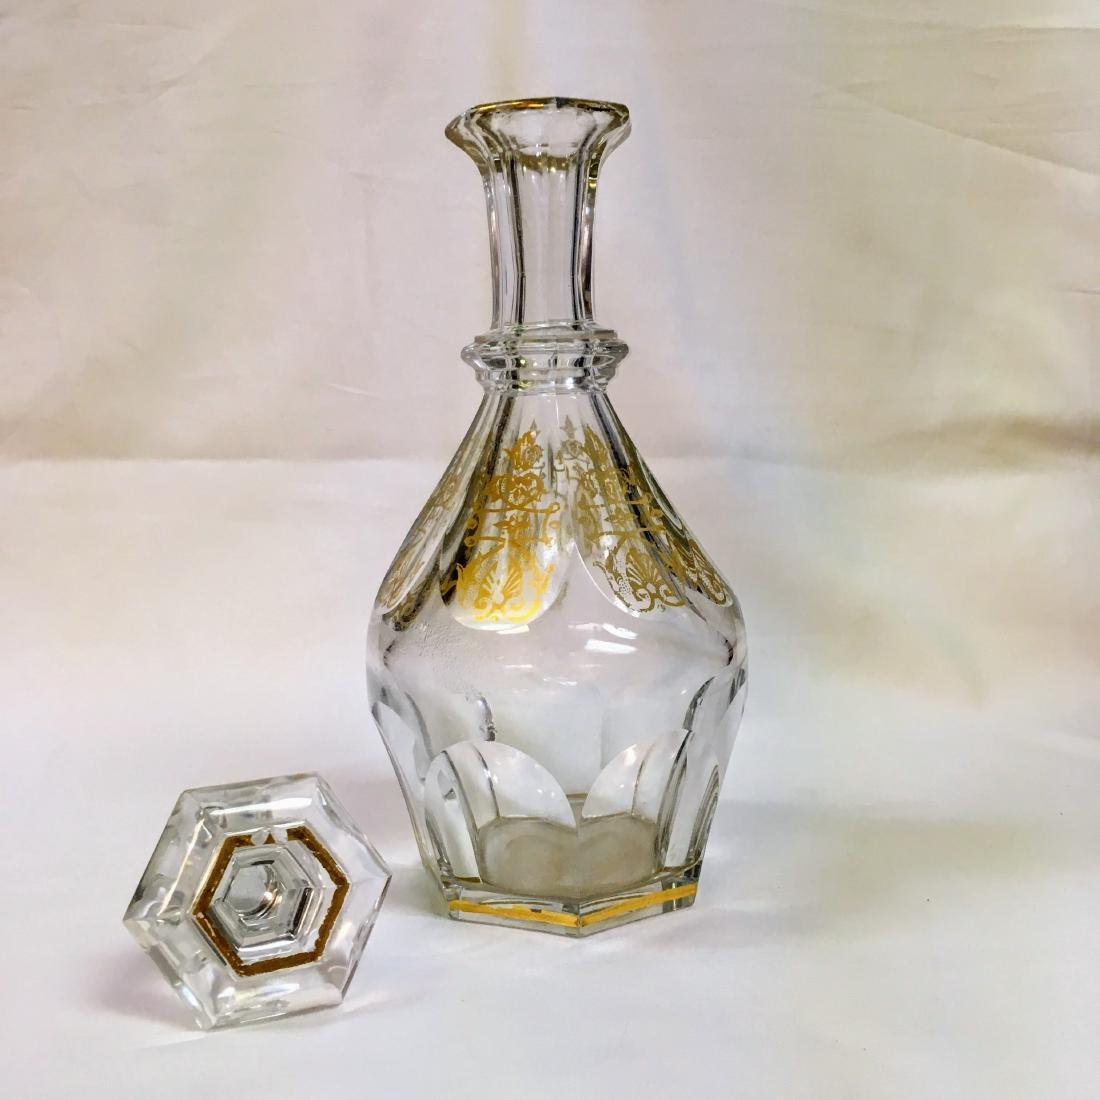 HARCOURT EMPIRE BACCARAT DECANTER SIGNED - 2